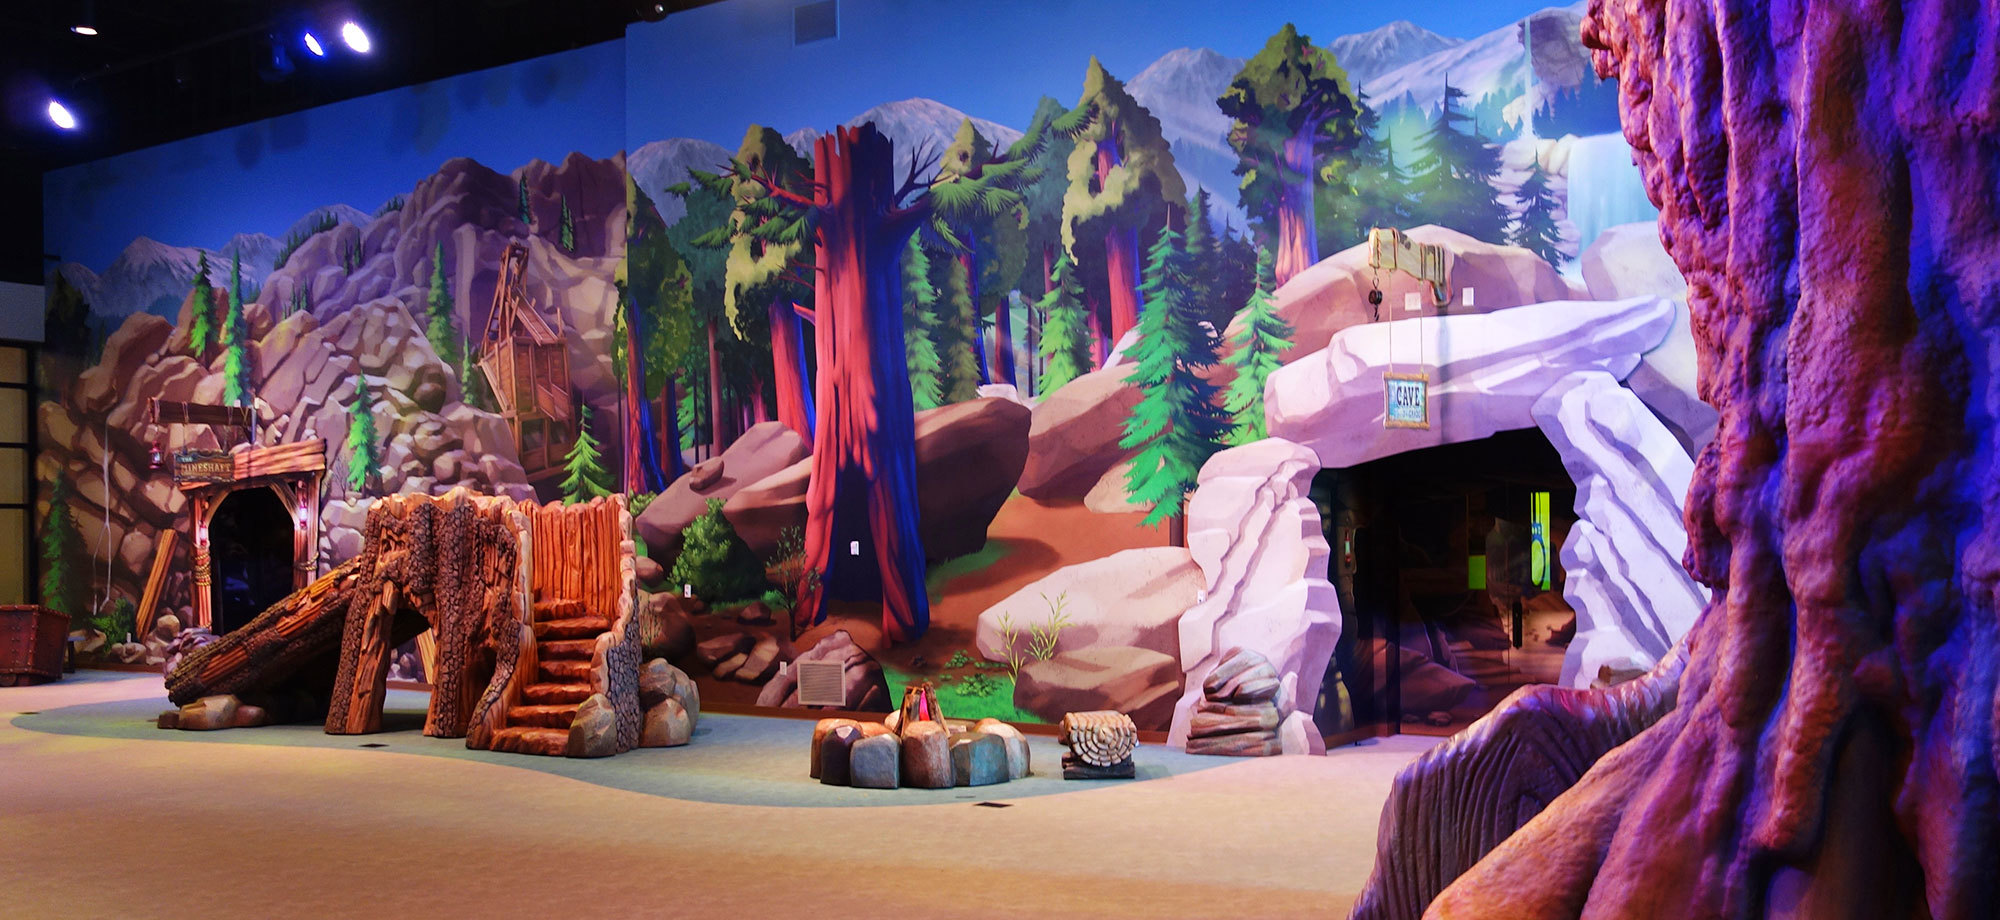 Fully Immersive Camping Themed Environment at NewPointe Community Church in Ohio